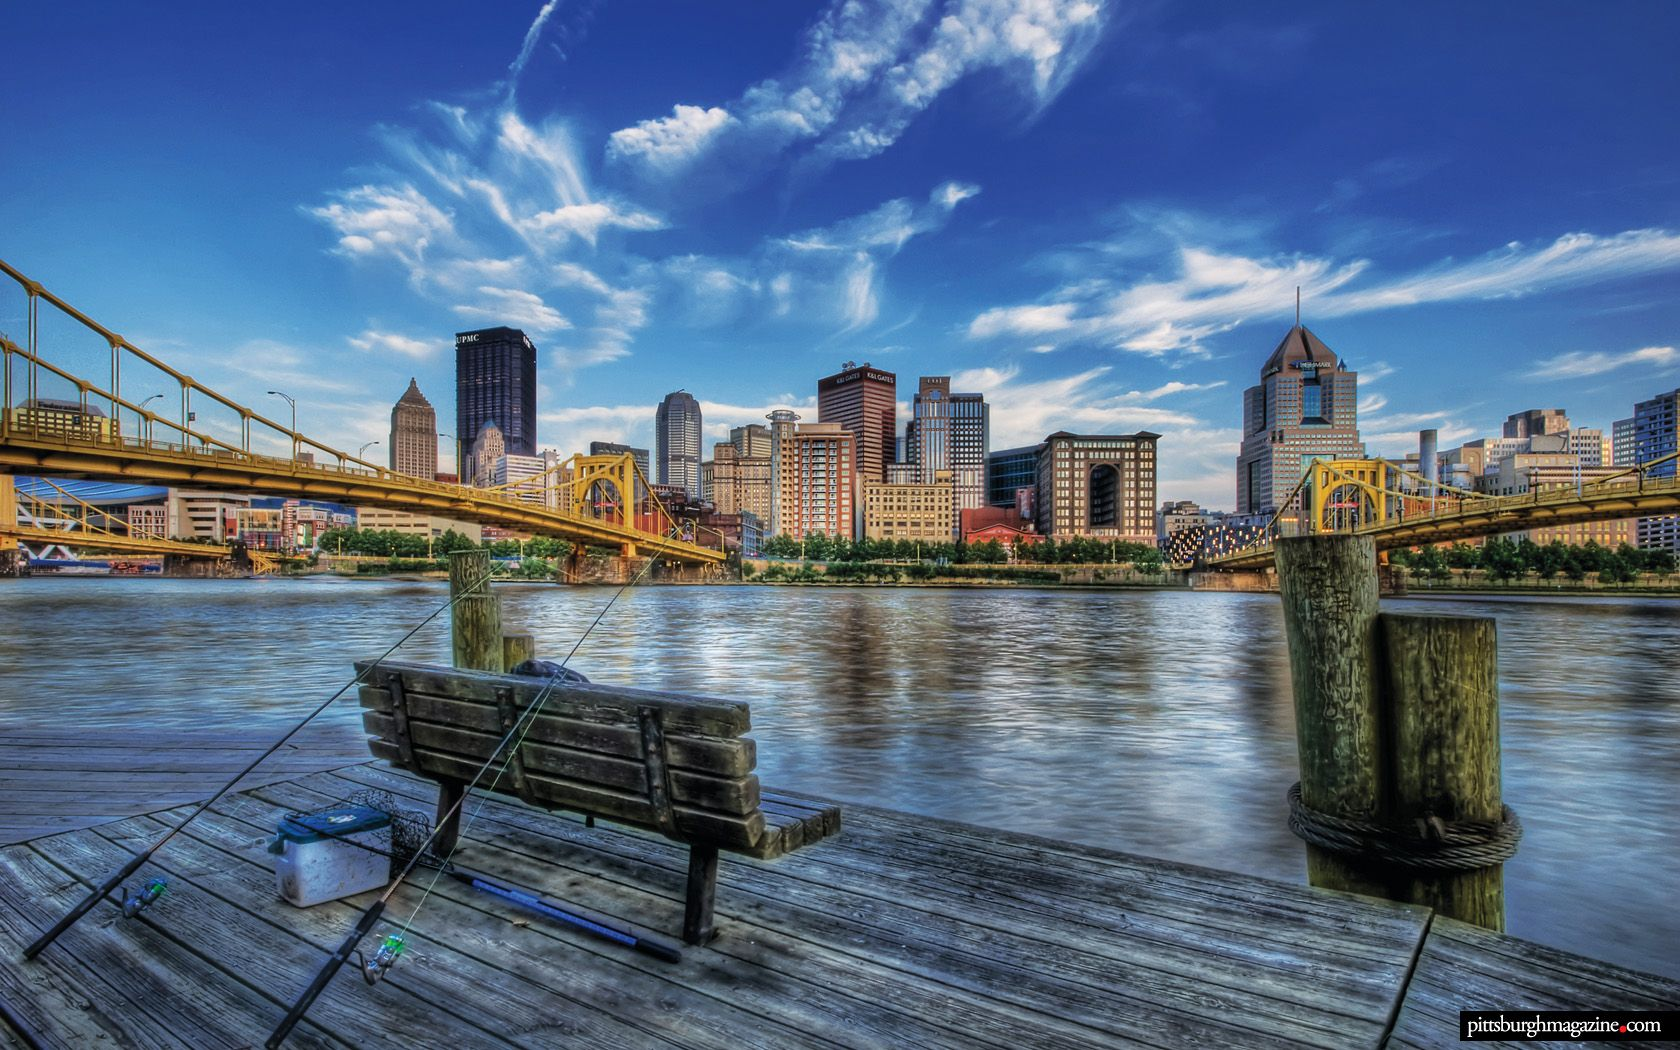 Pittsburgh Desktop Wallpaper Skyline: We're On Pinterest! Be Our Pal And Get The Best Of